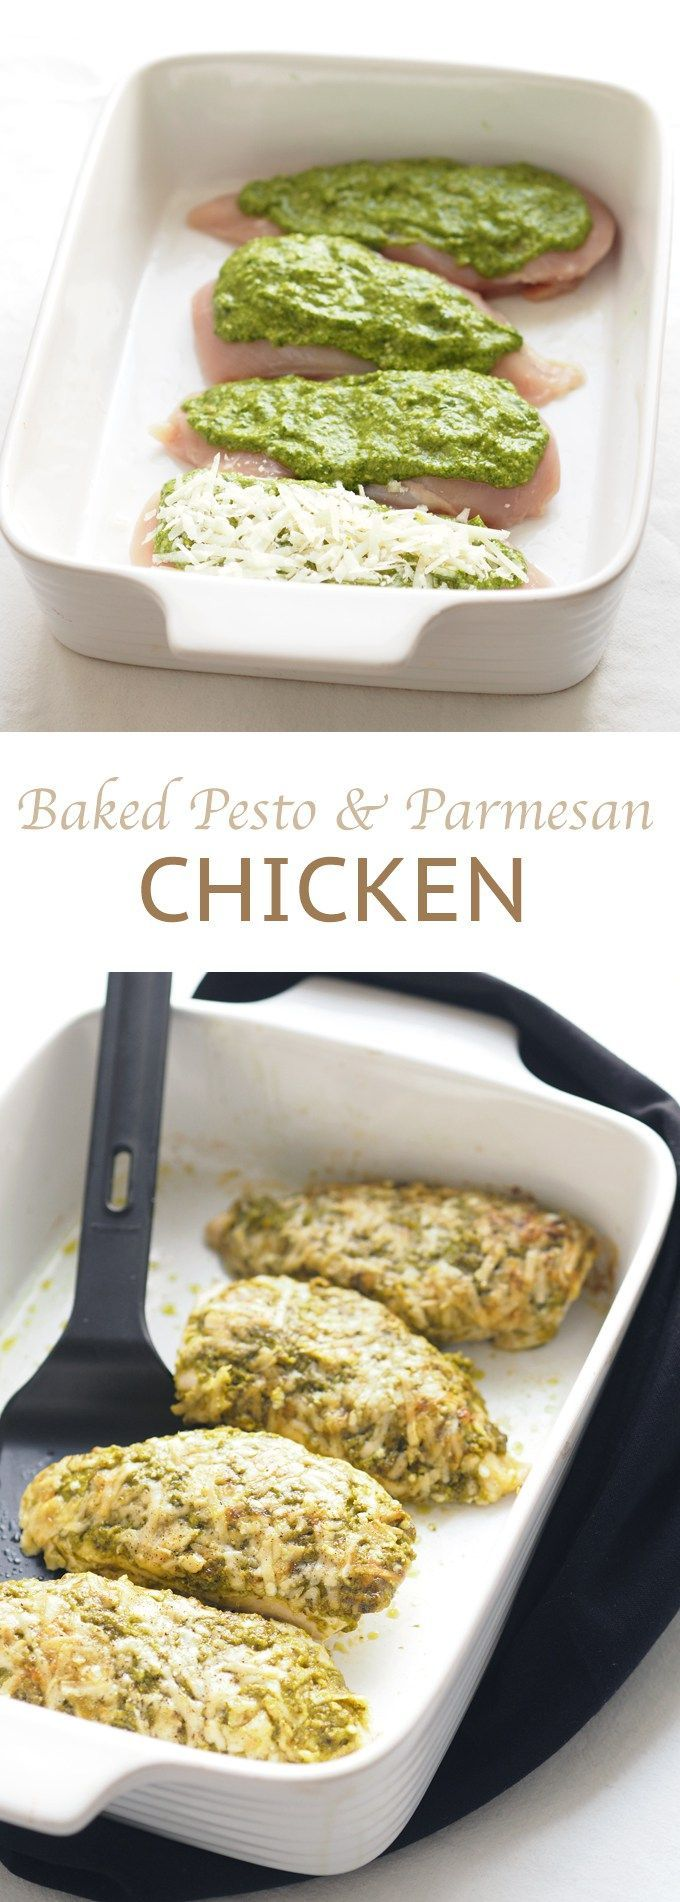 baked pesto parmesan chicken